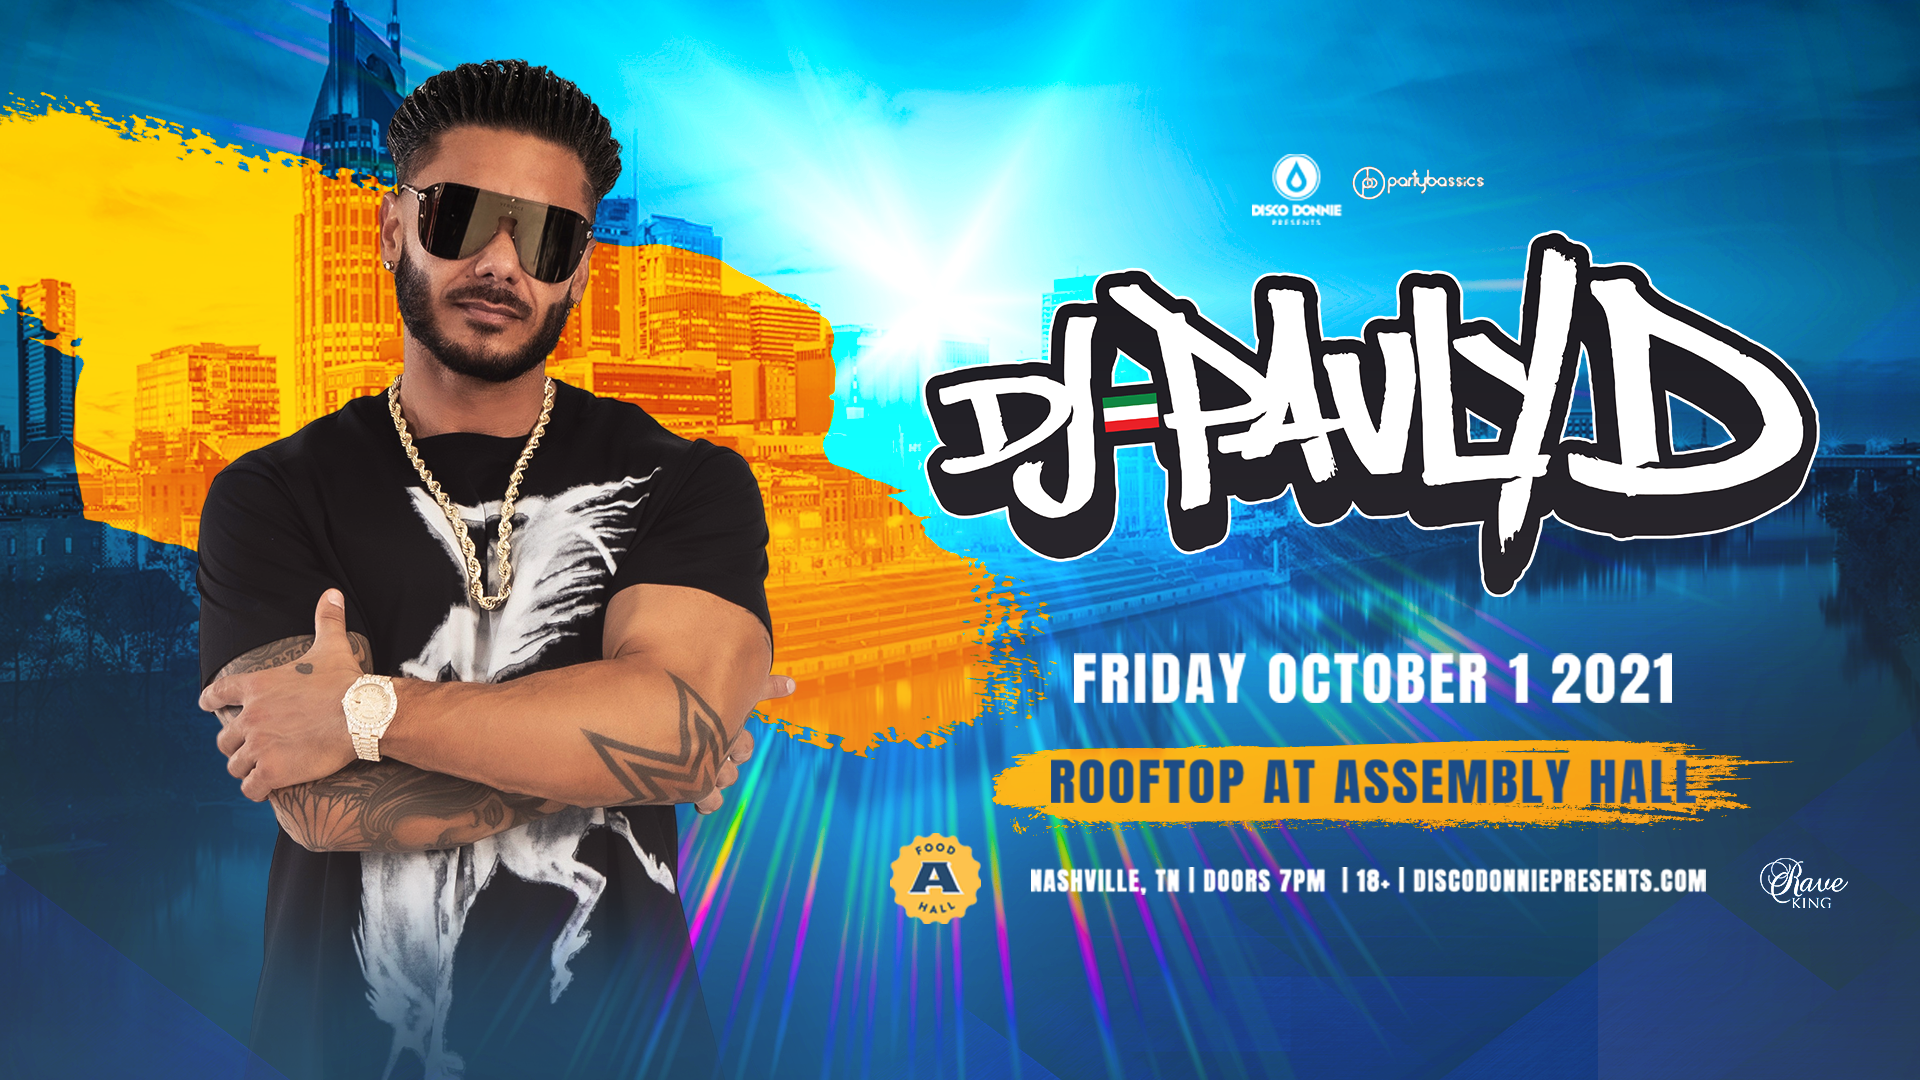 Promo image of DJ Pauly D on the Skydeck